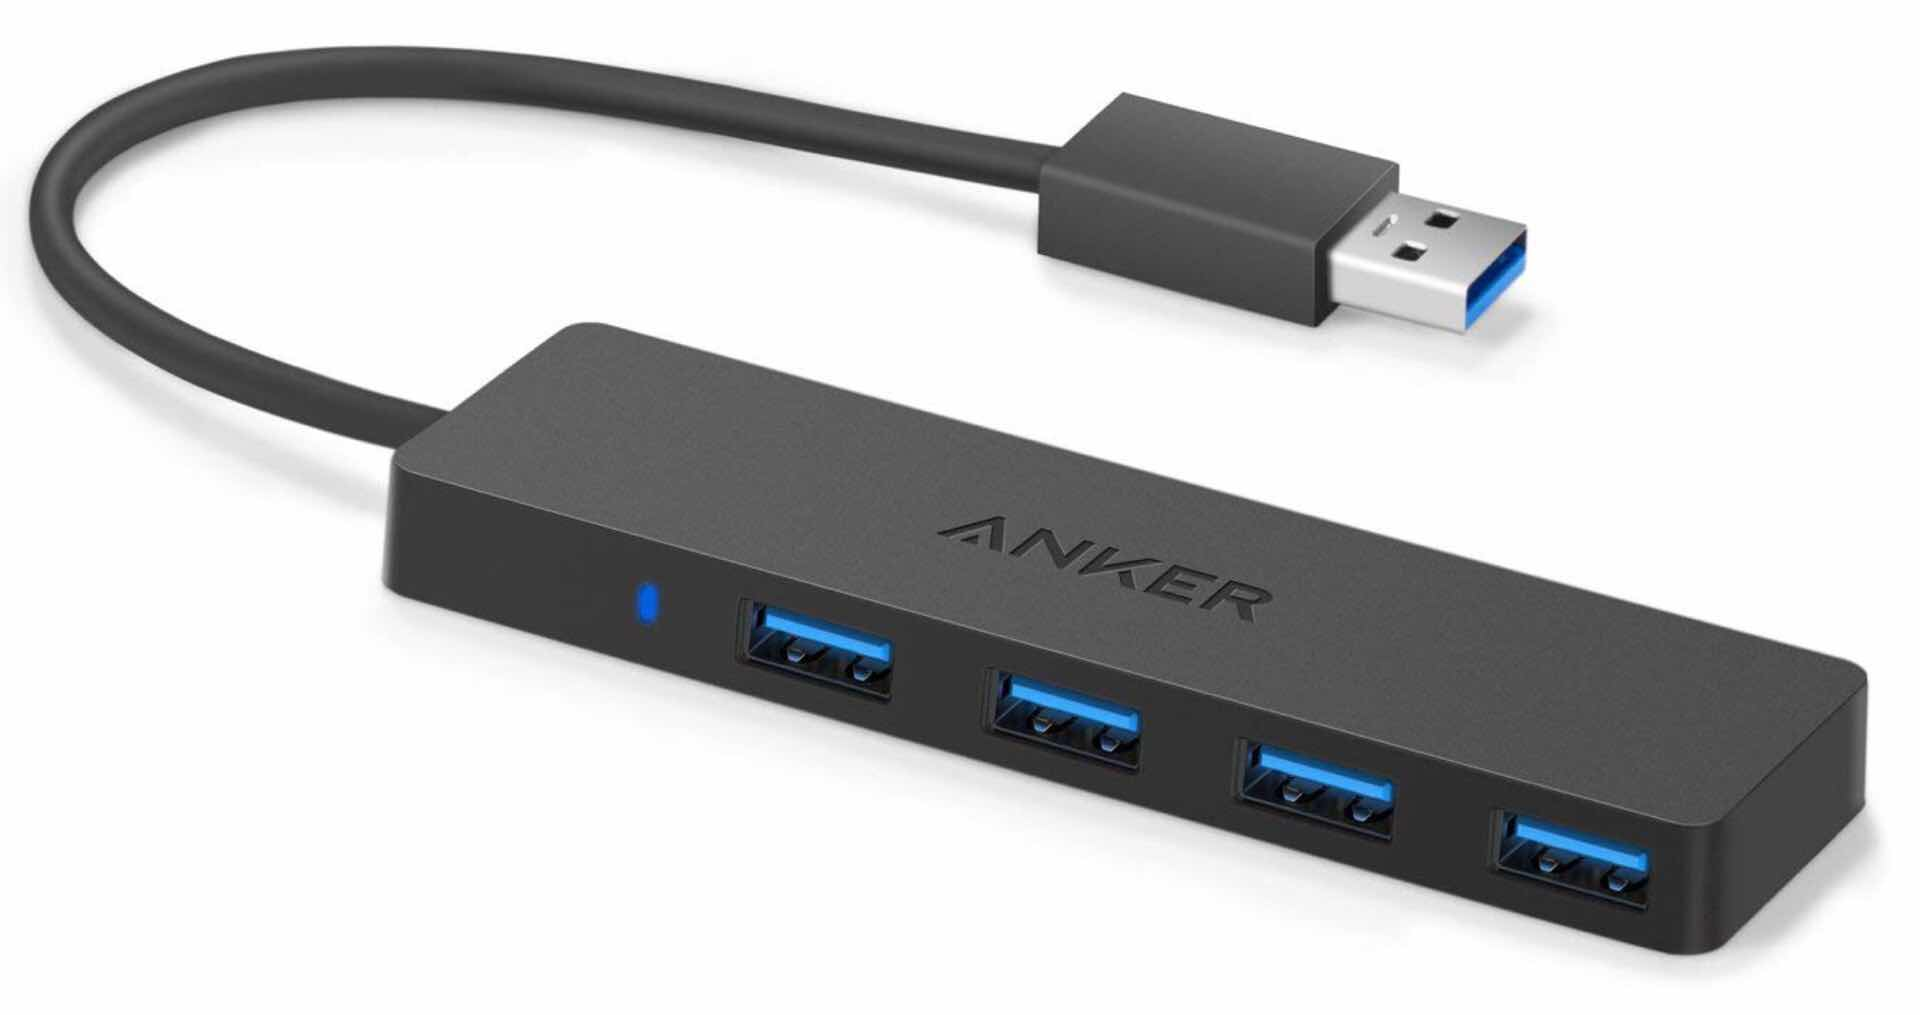 anker-ultra-slim-4-port-usb-3-0-hub